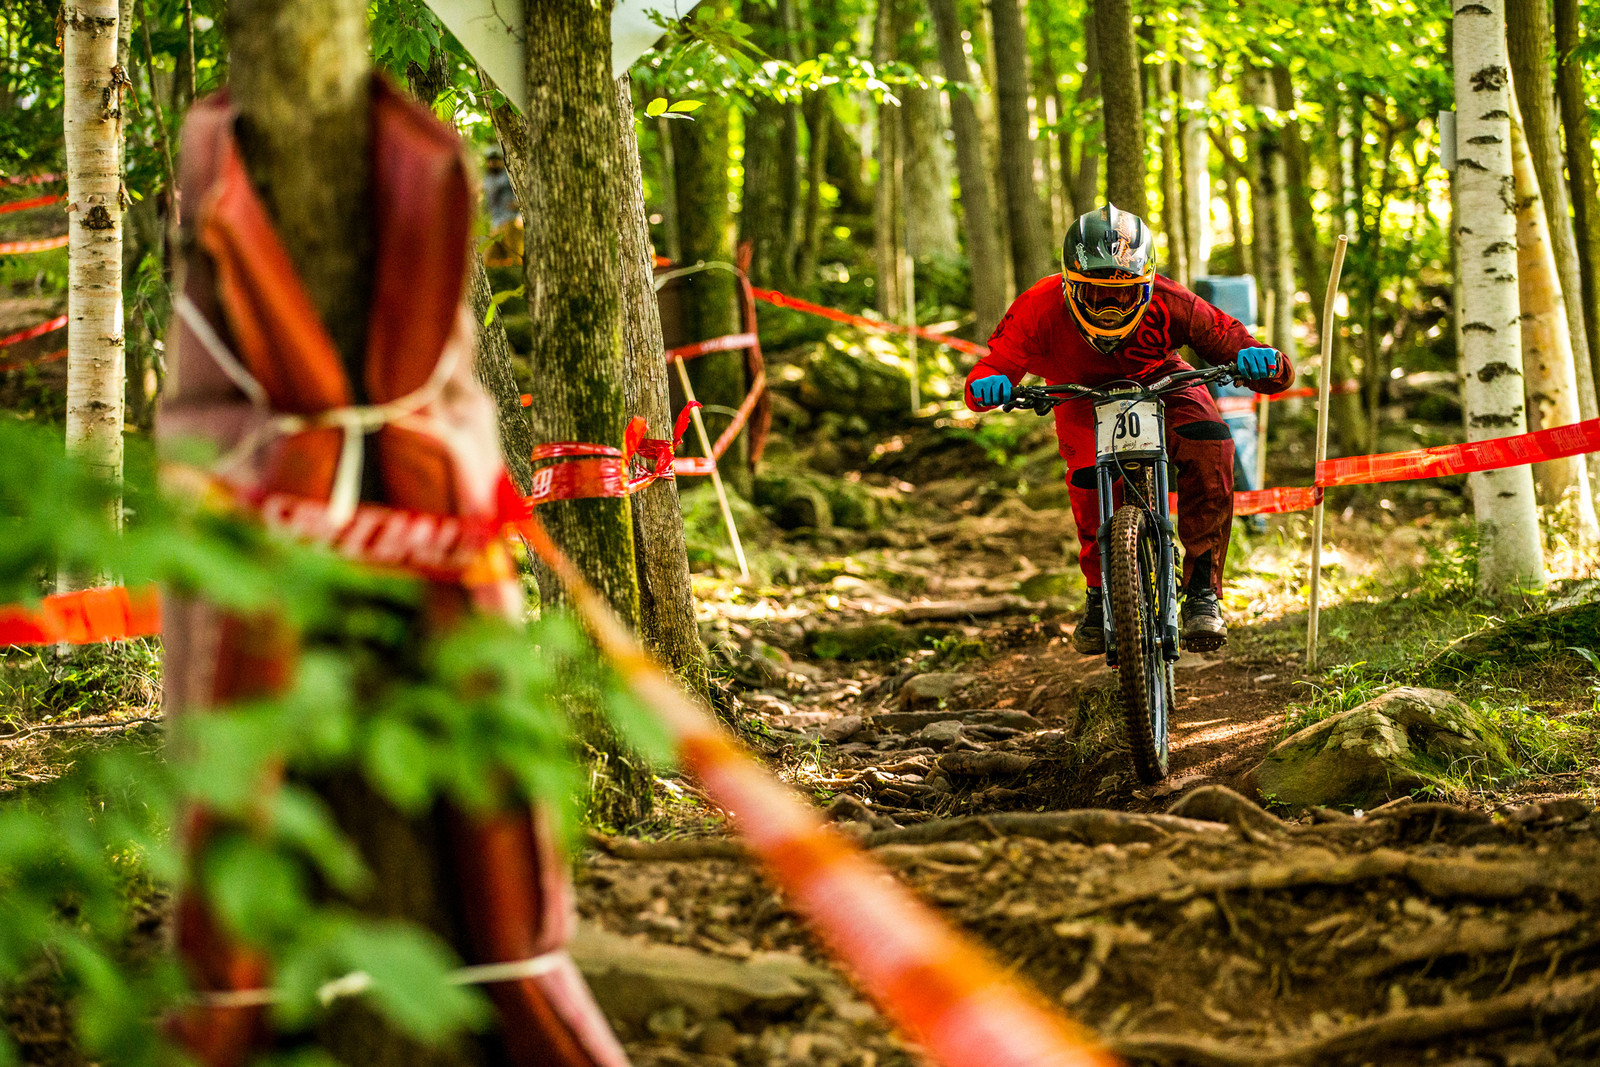 George Ryan - RACE DAY GALLERY - 2017 Pro GRT, Windham, NY - Mountain Biking Pictures - Vital MTB